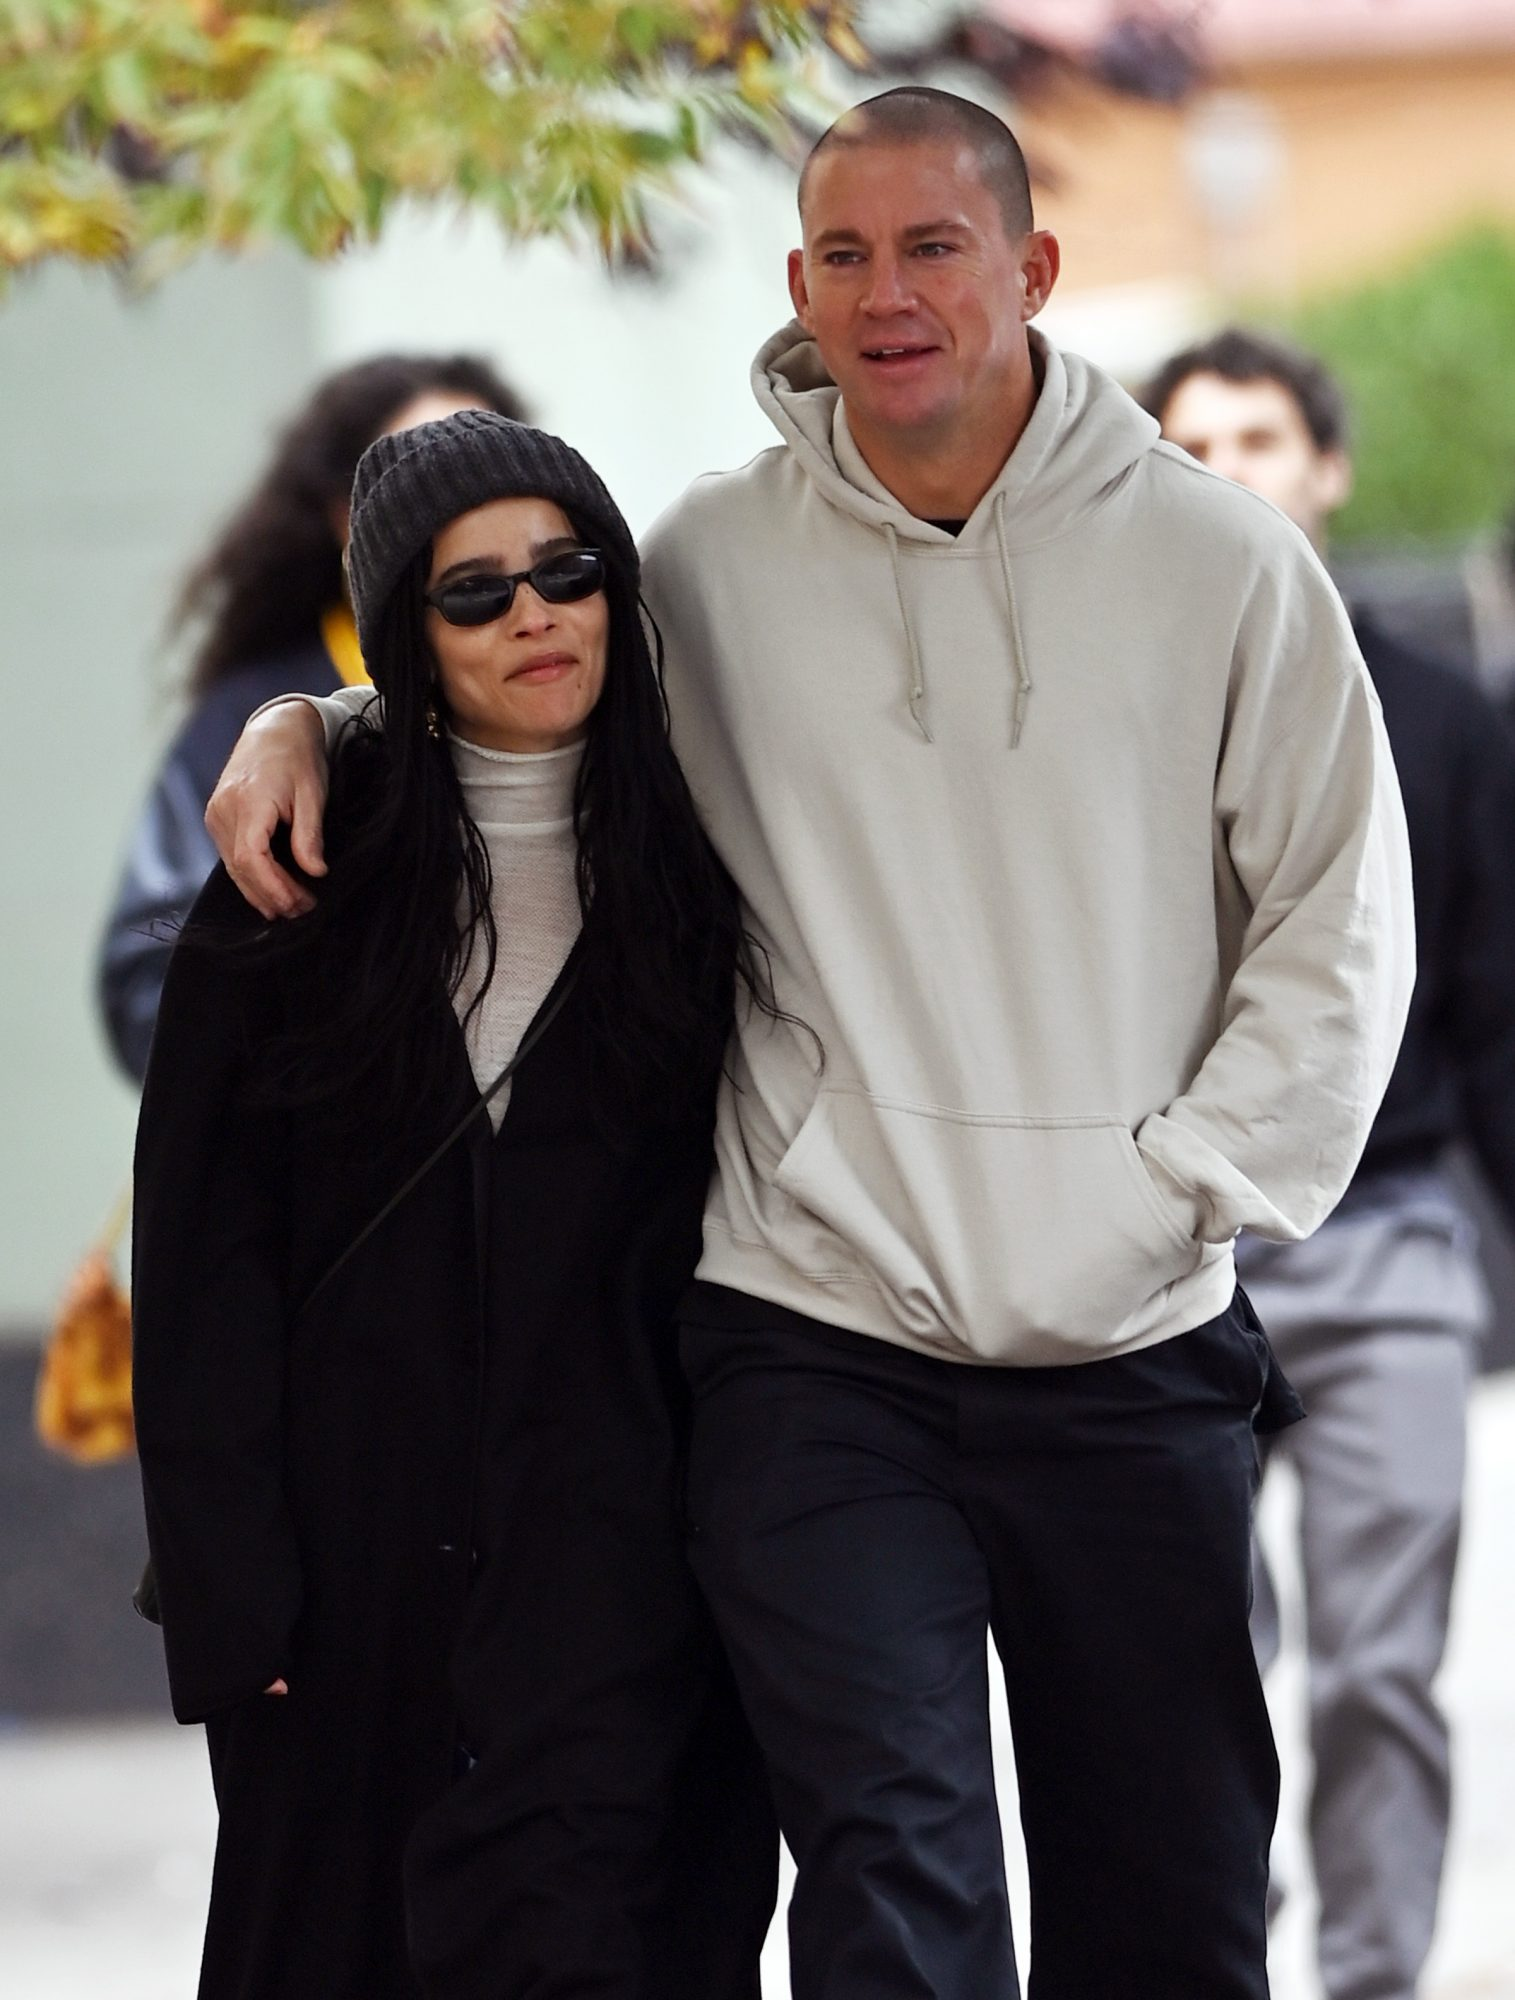 Zoe Kravitz And Channing Tatum Confirm Romance With Some Sweet PDA On Lunch Date In NYC